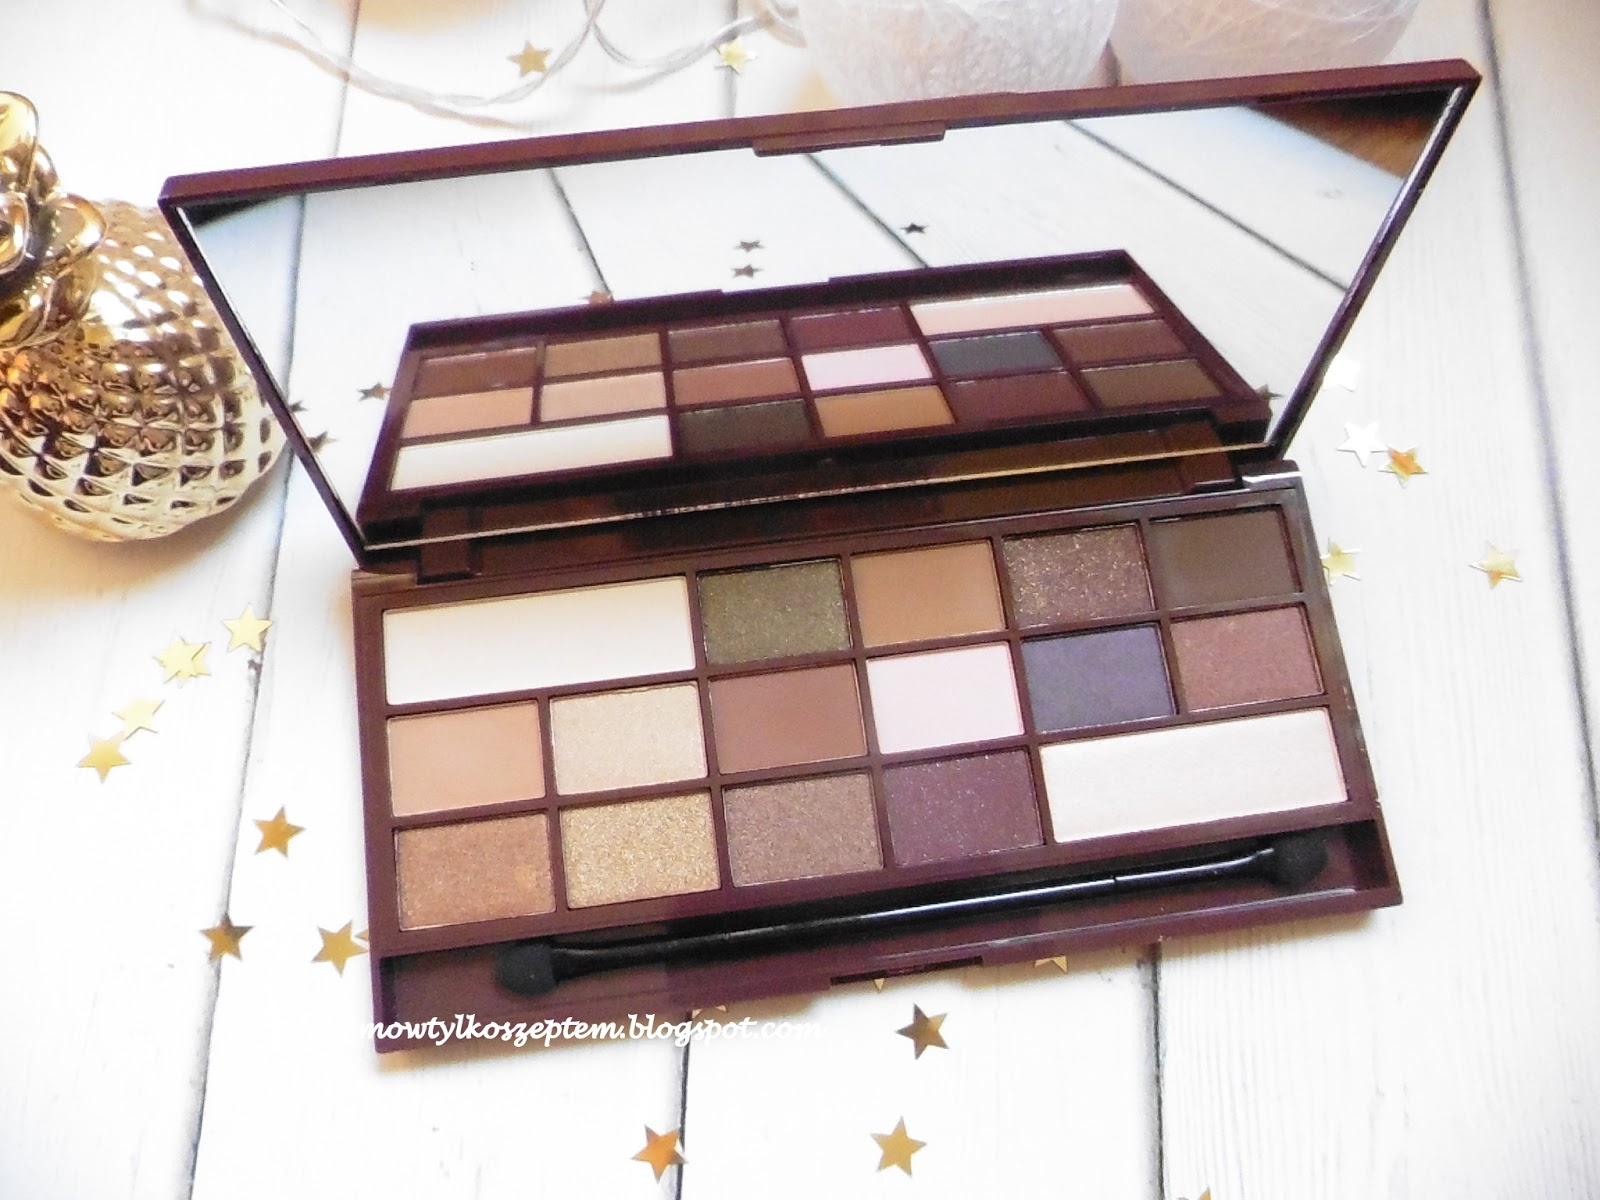 paletka-makeup-revolution-rozdanie,i-heart-chocolate-makeup-revolution